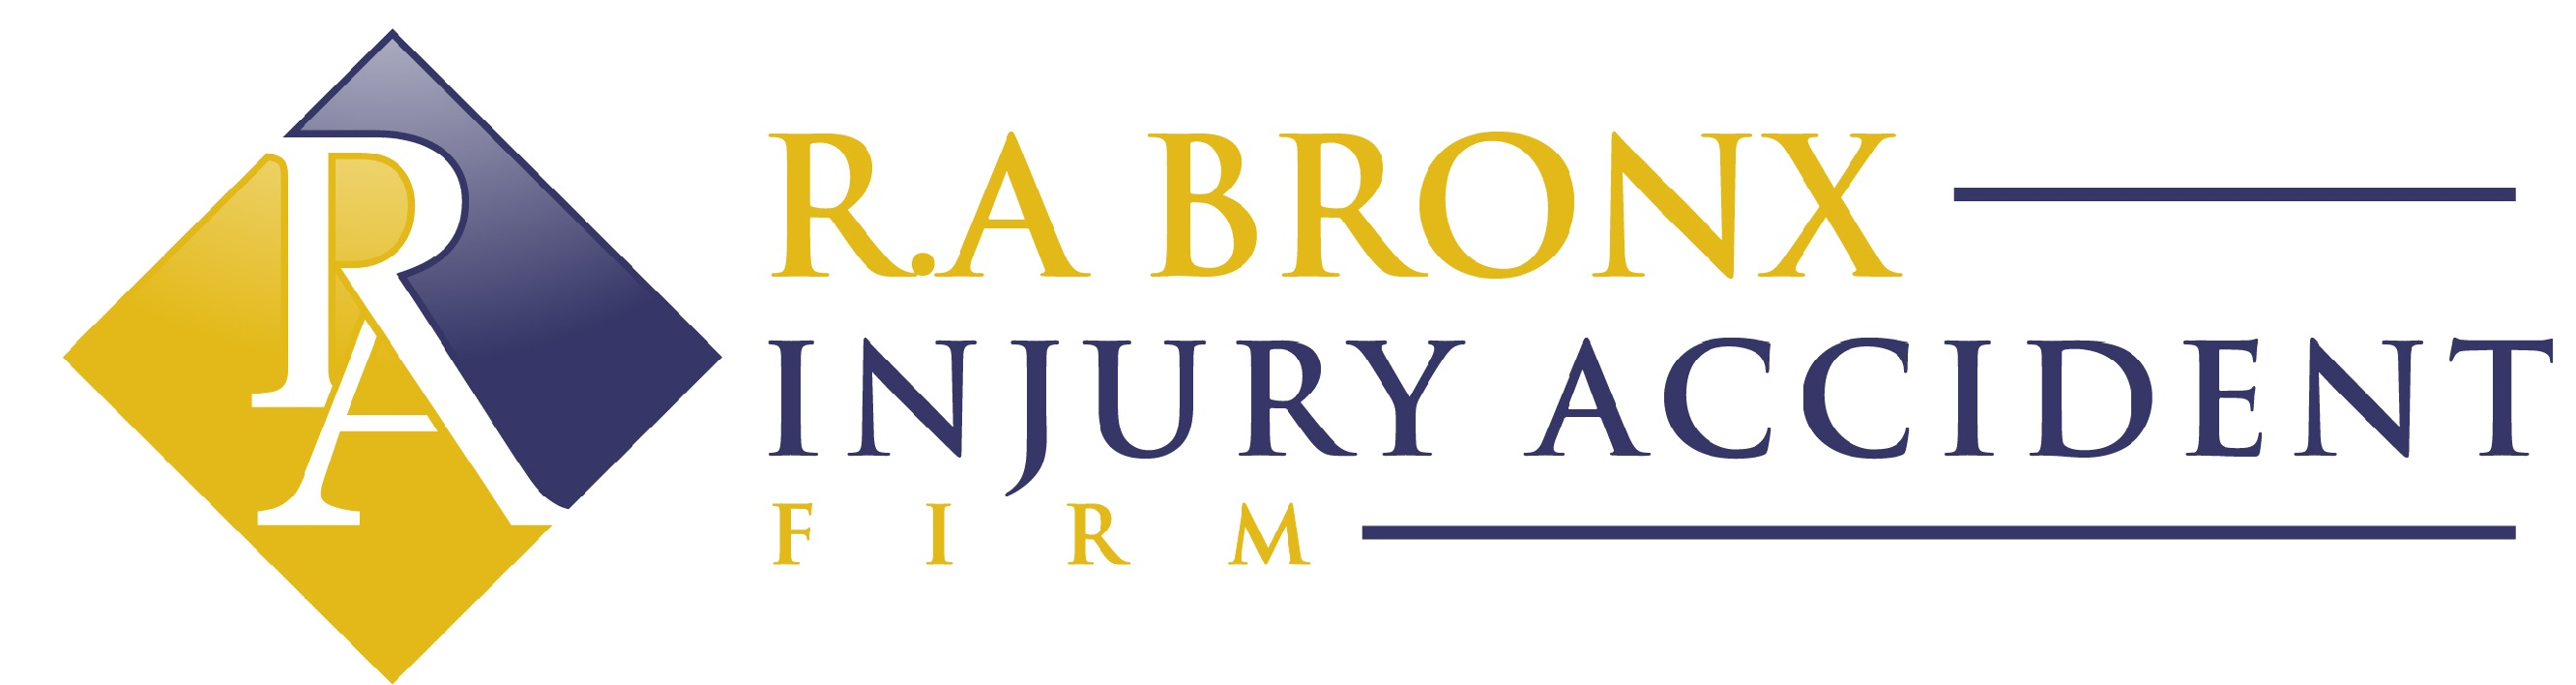 R.A Bronx Injury Accident Firm